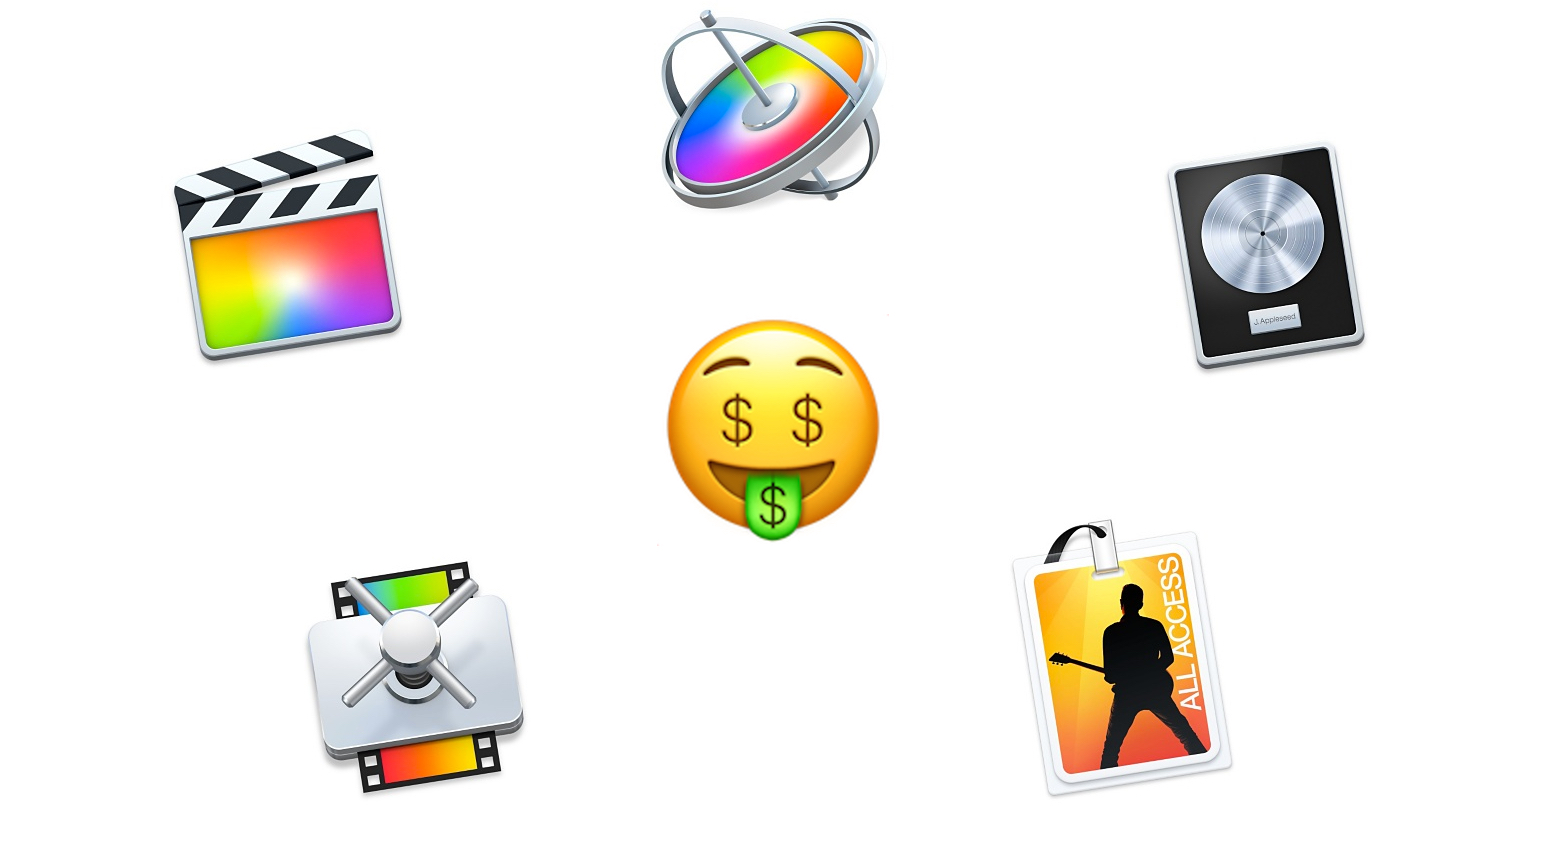 Apple's pro Mac apps bundle deal for students and teachers